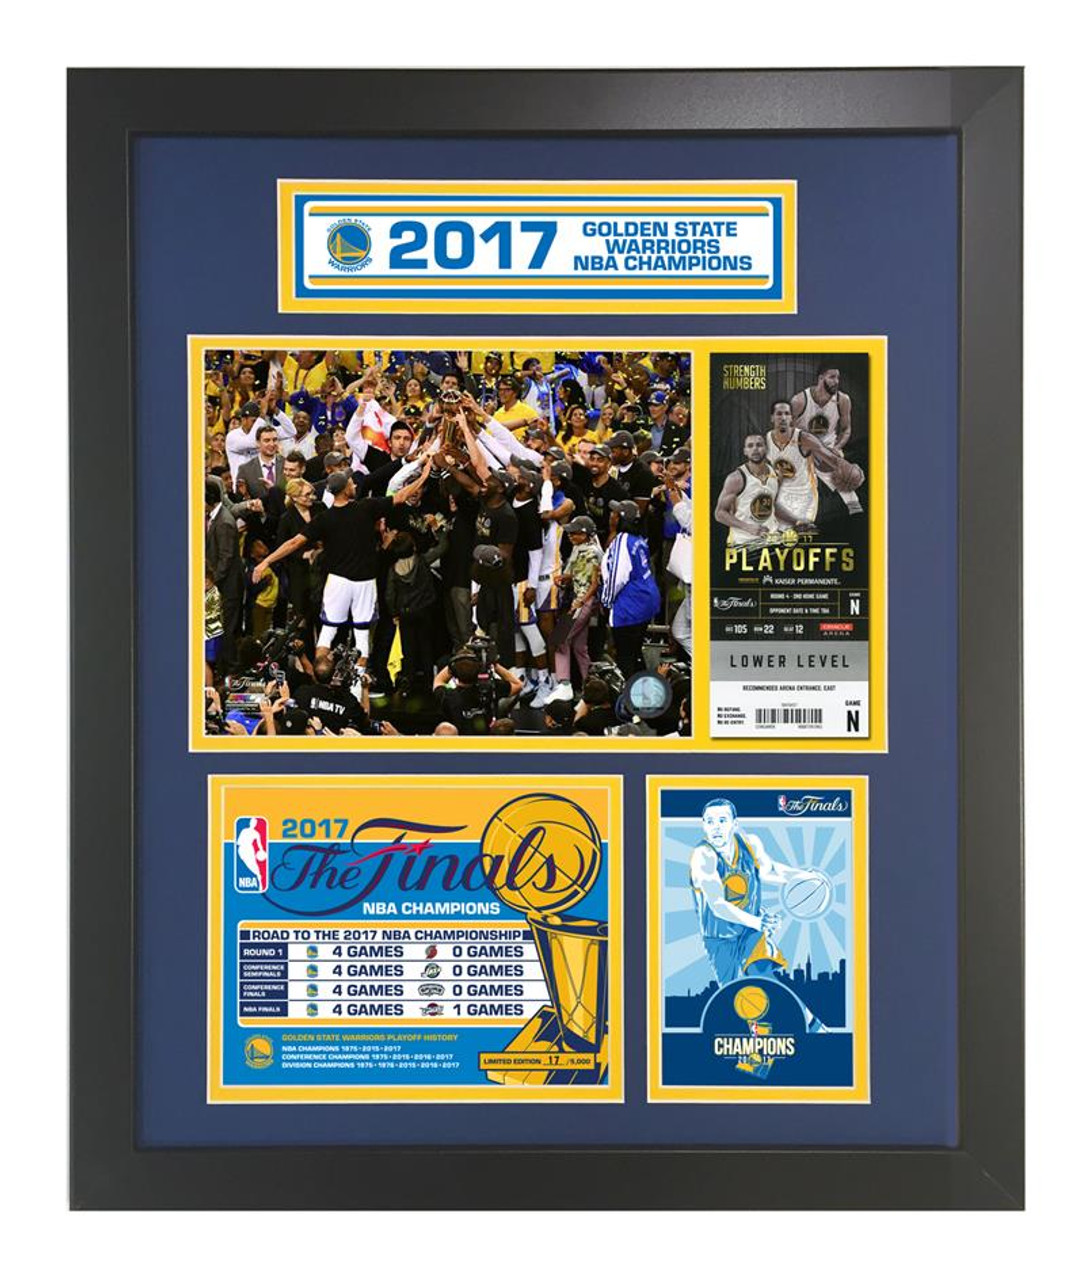 41813c42760 Golden State Warriors 2017 NBA Champions Framed Piece Signed by Steve Kerr